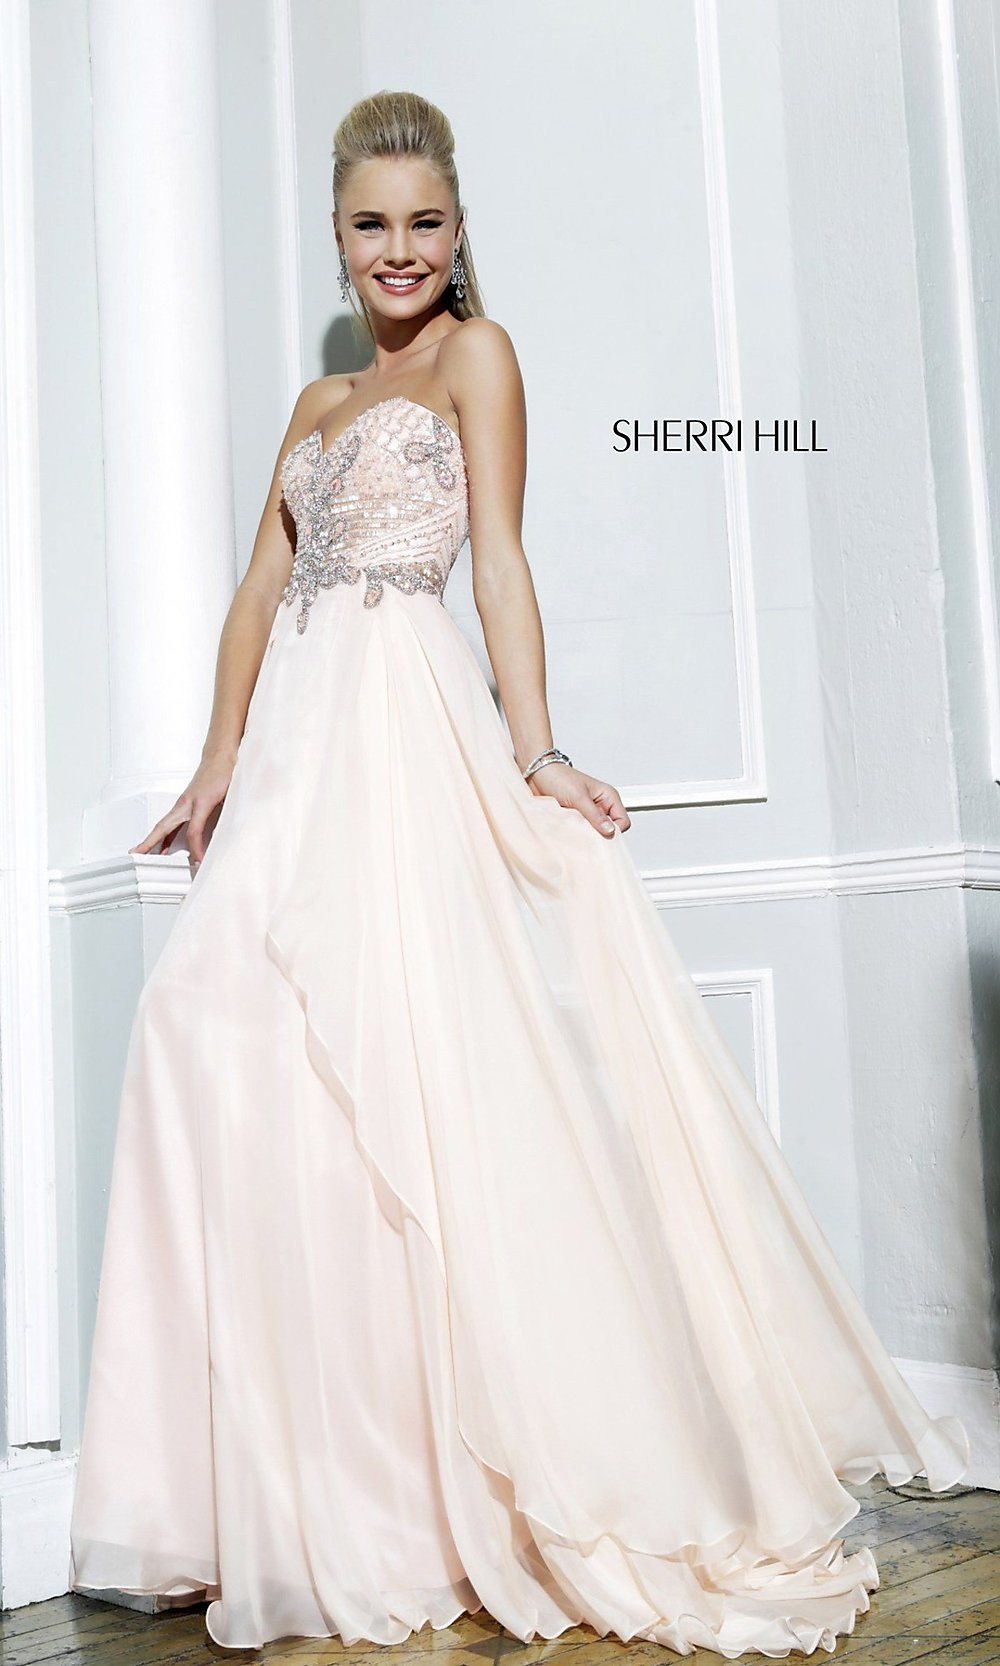 Strapless Prom Gown, Sherri Hill Strapless Gown for Prom-PromGirl